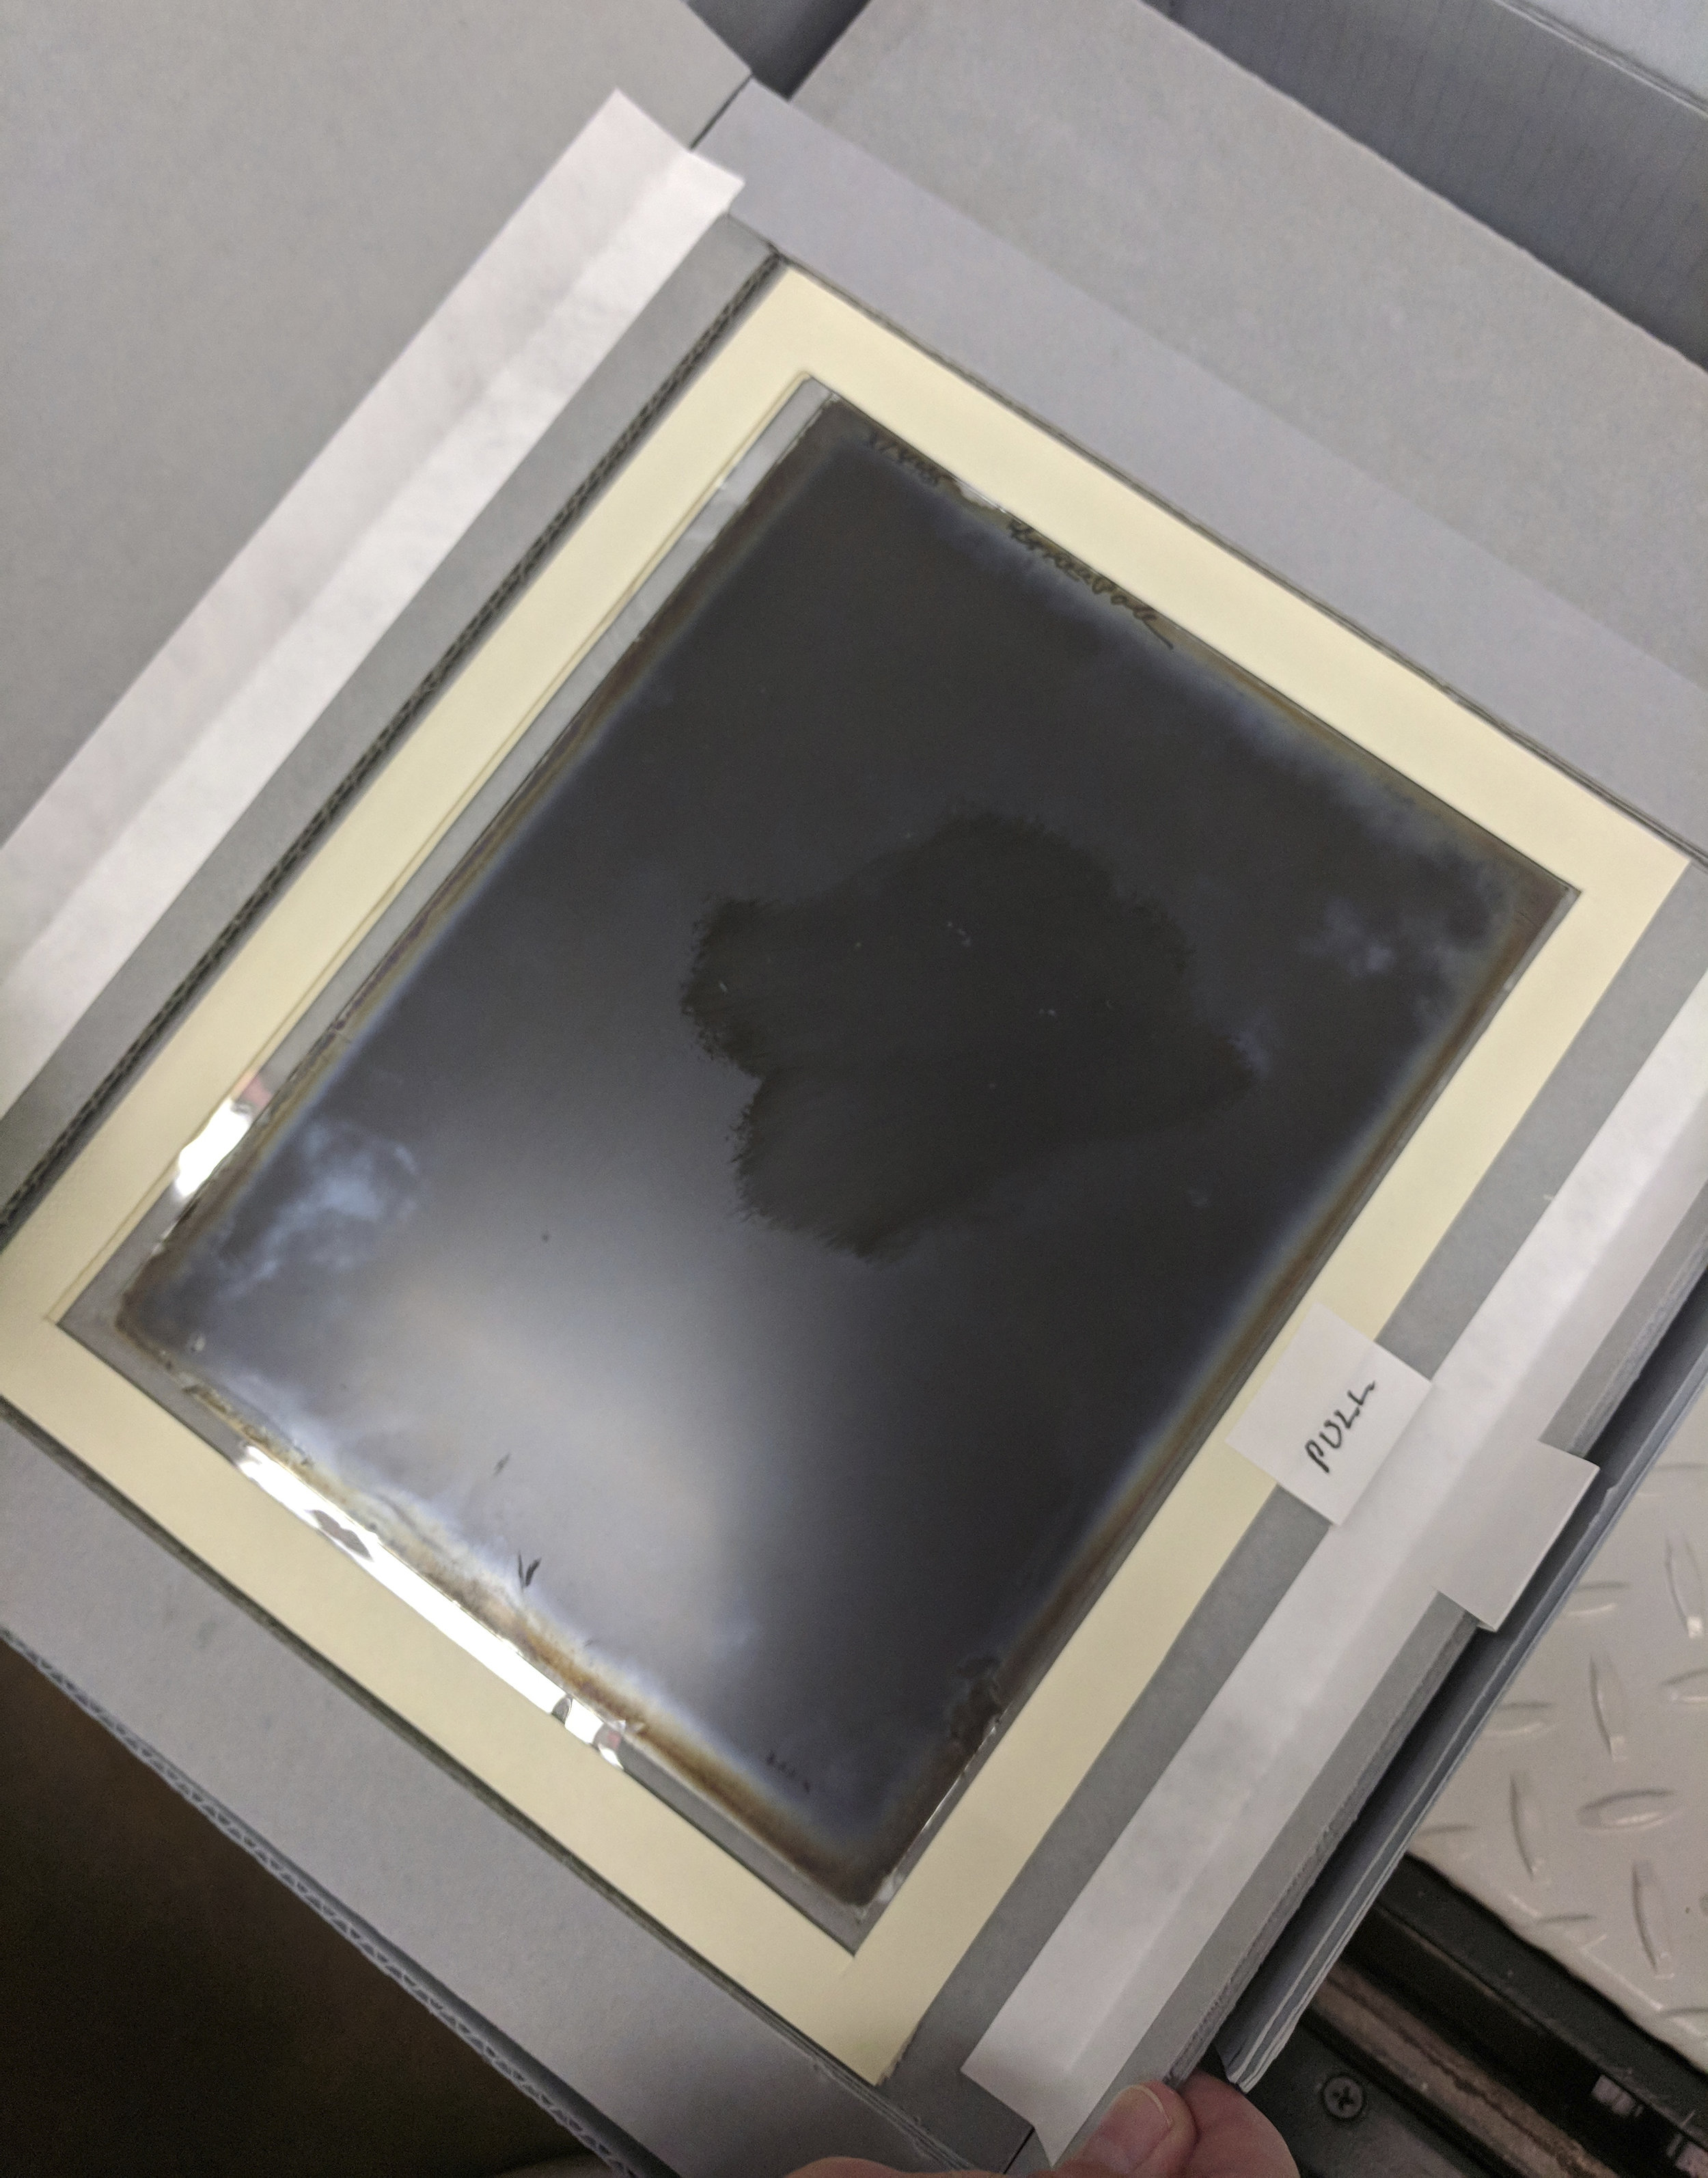 Custom housing for glass plate negatives: mylar support to allow viewing and reduce handling